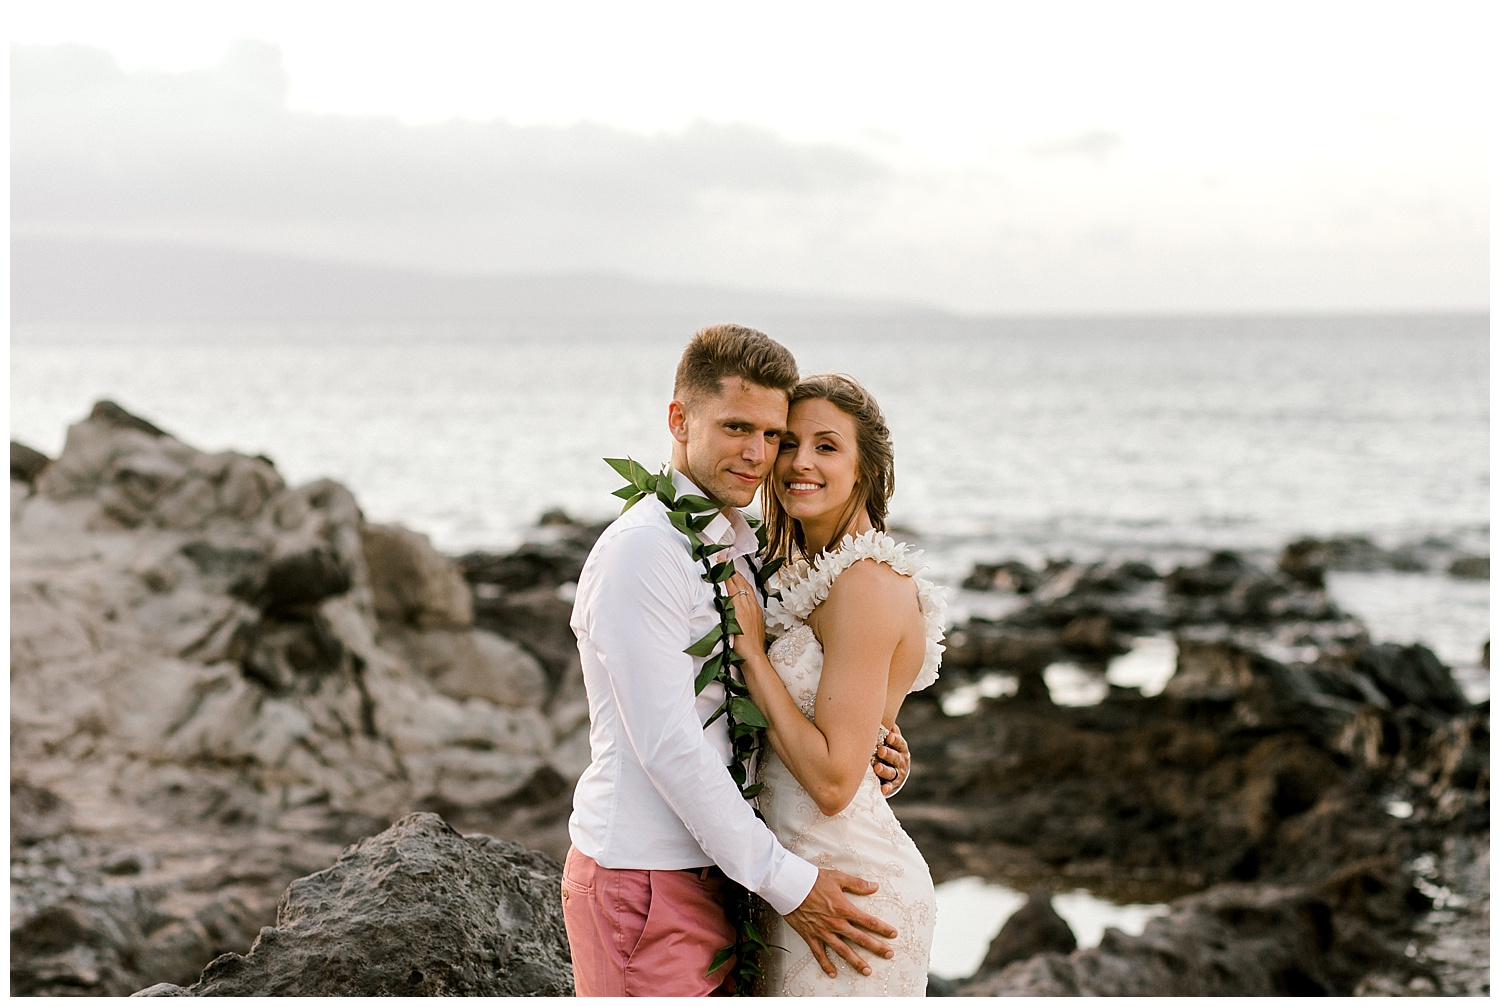 Maui-Elopement-Photography-Ironwoods-Elopement_0150.jpg